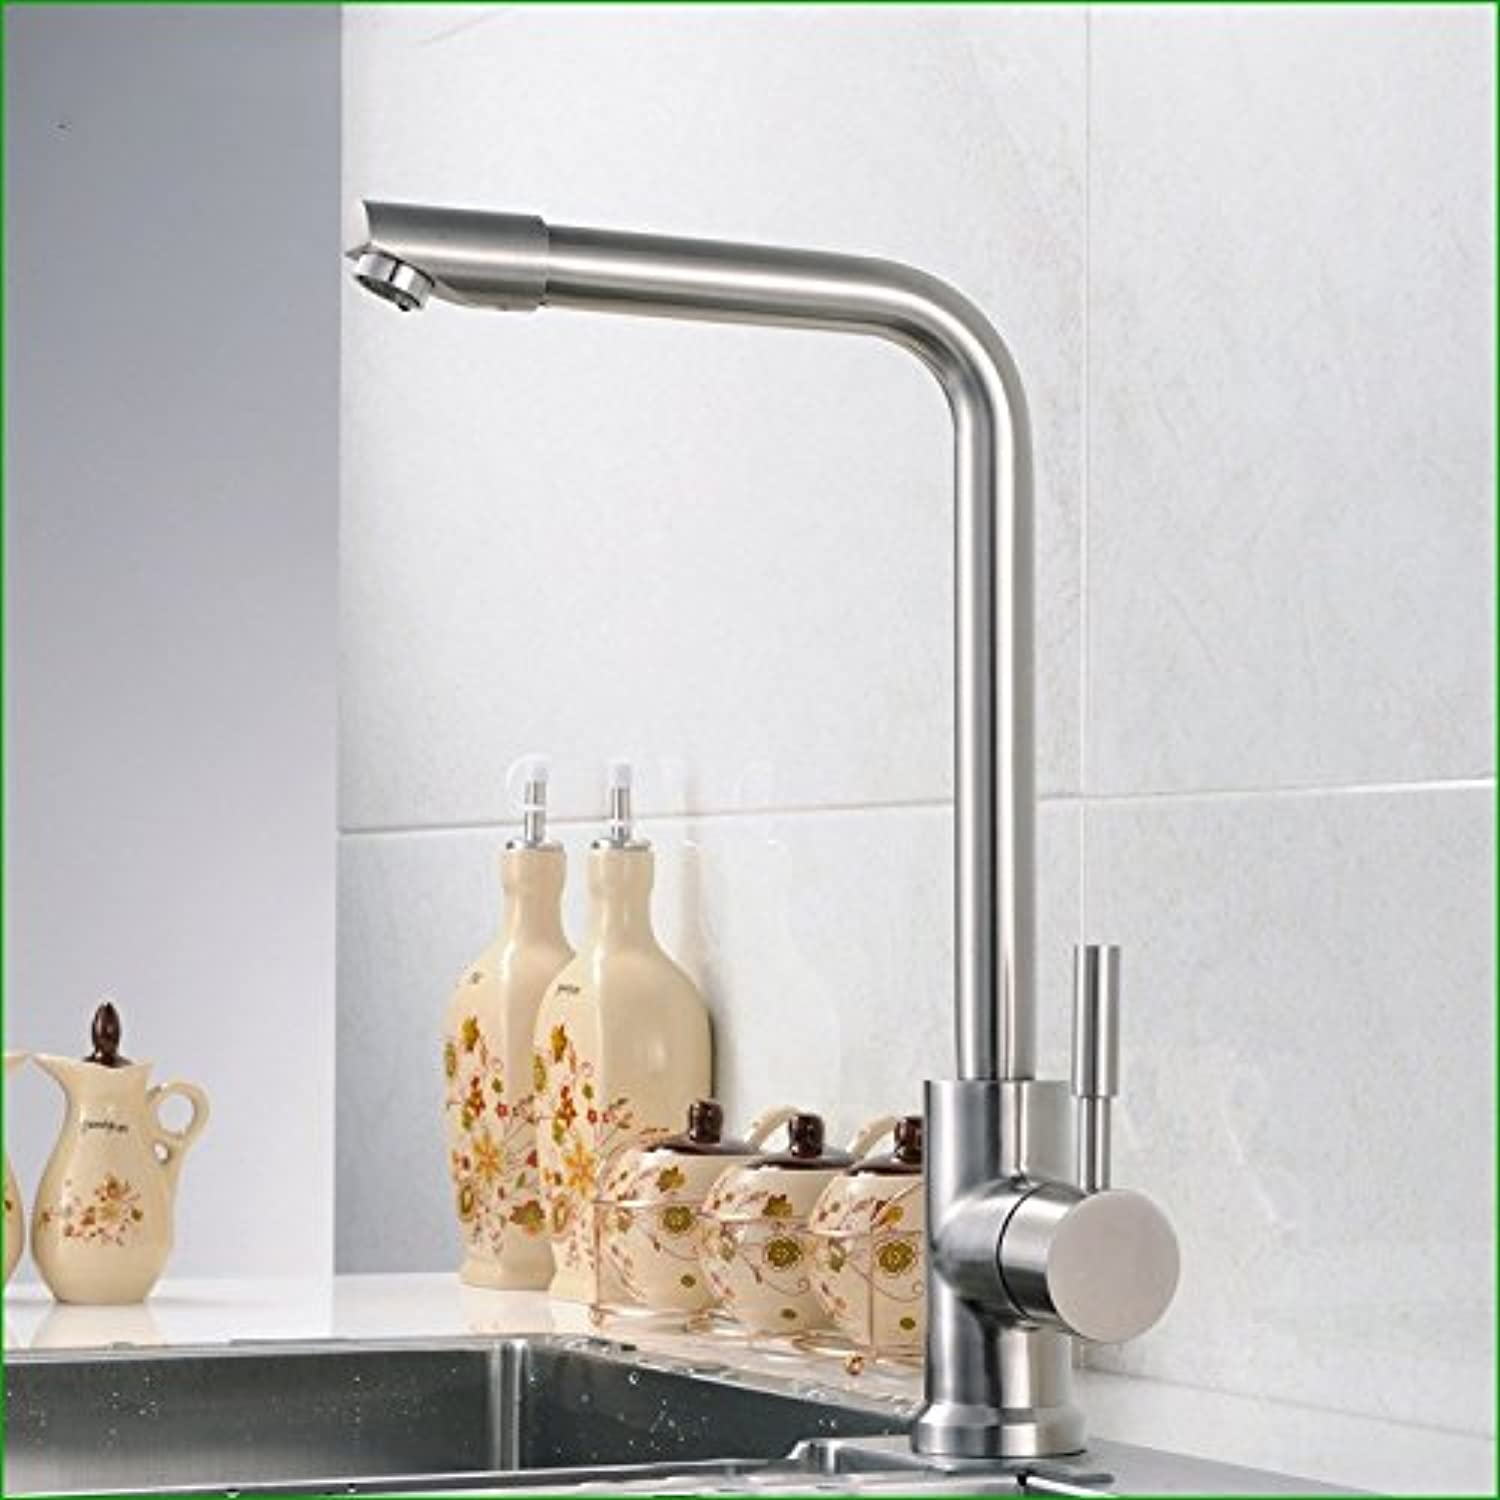 Commercial Single Lever Pull Down Kitchen Sink Faucet Brass Constructed Polished Stainless Steel Kitchen Faucet Sink Faucet Hot and Cold Sink Sink Faucet redatable Faucet